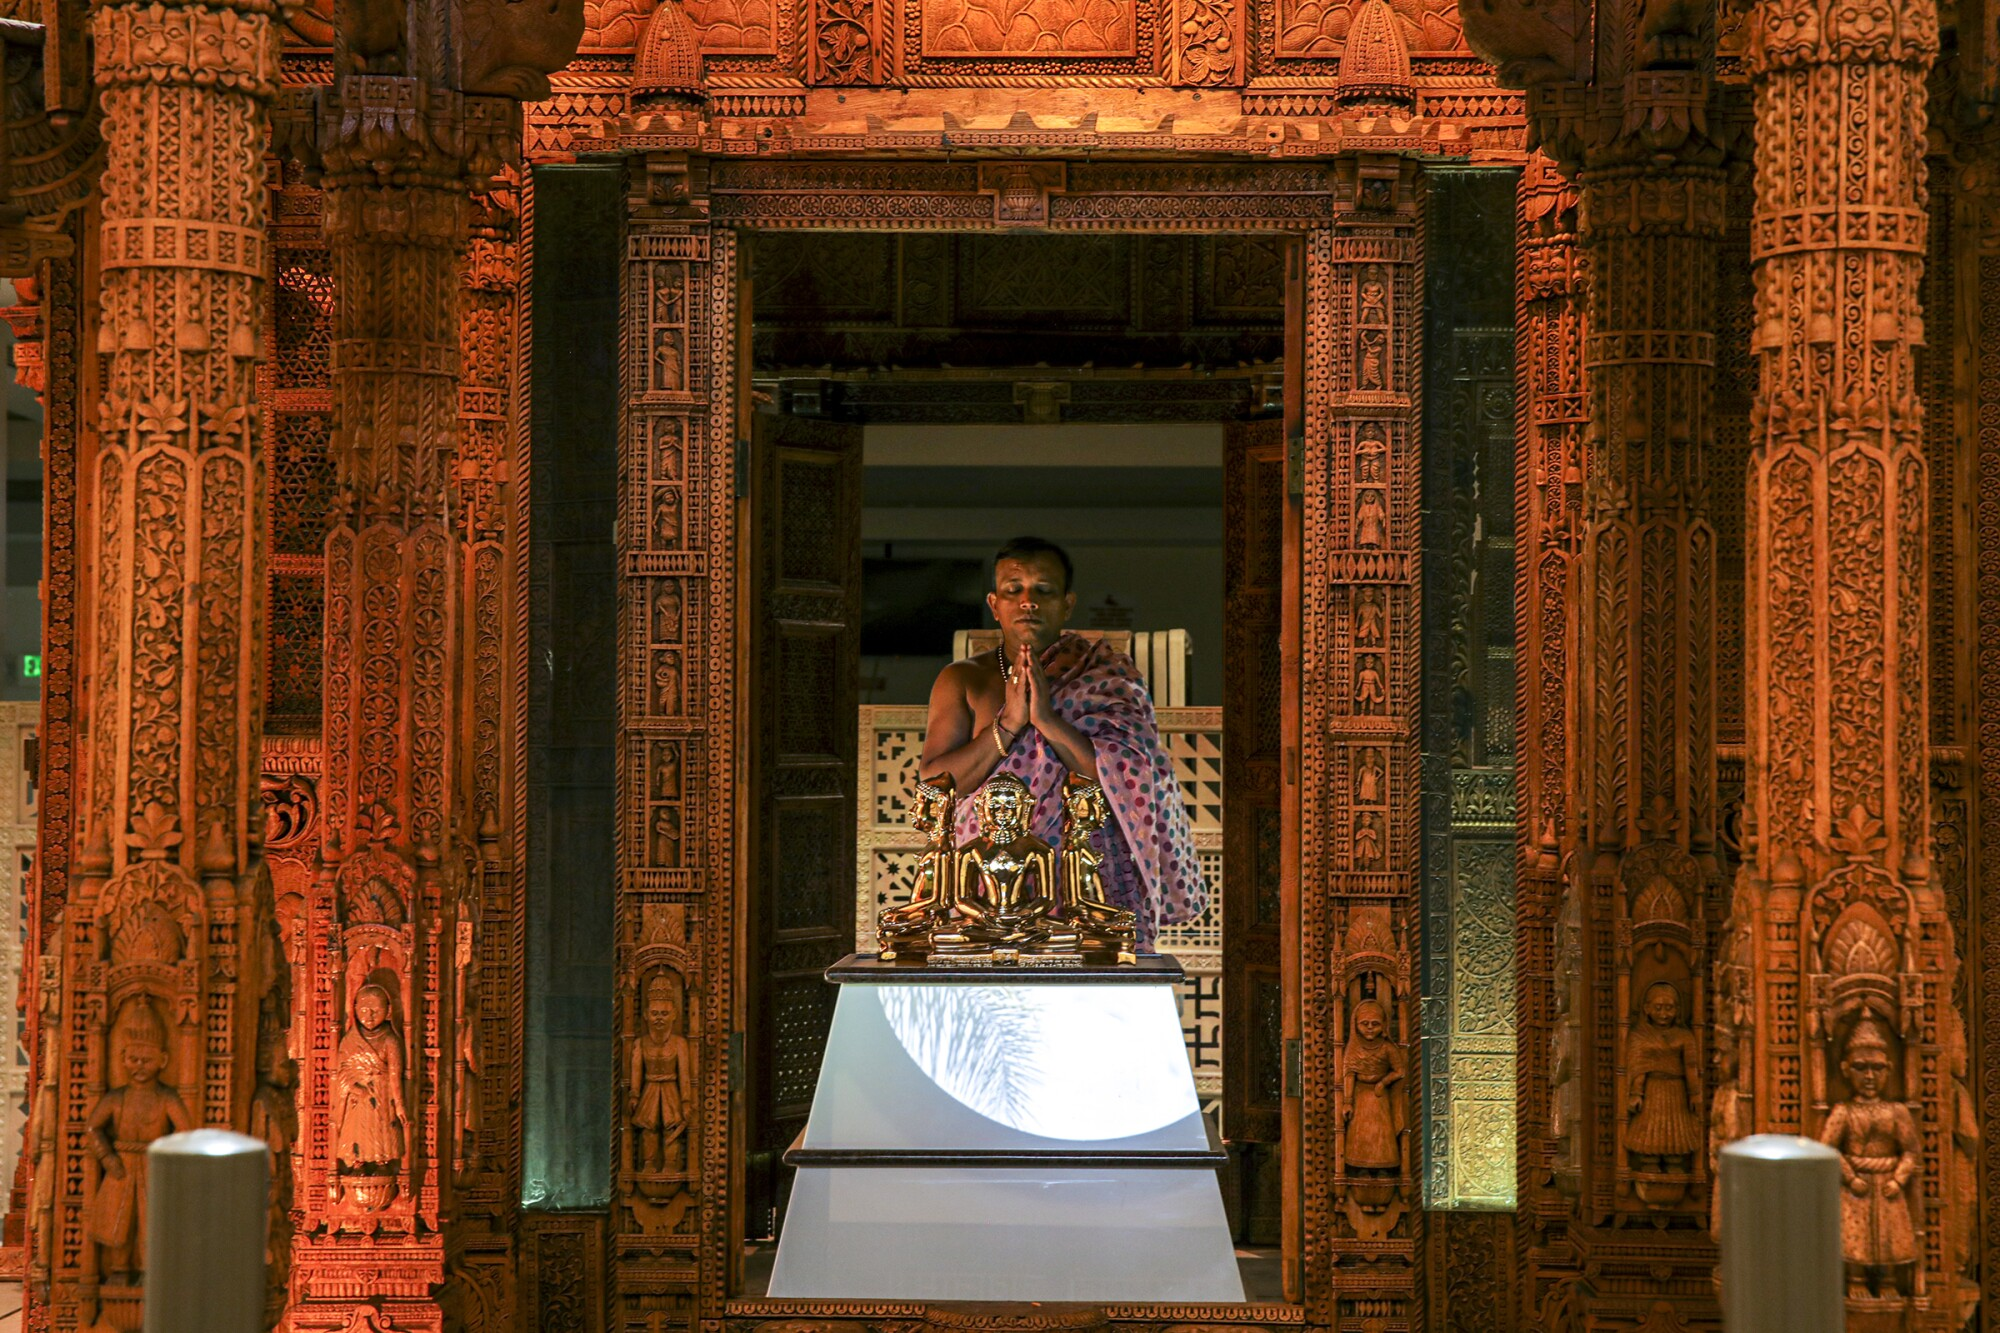 A man clasps his hands together in prayer inside a temple with ornate wooden columns